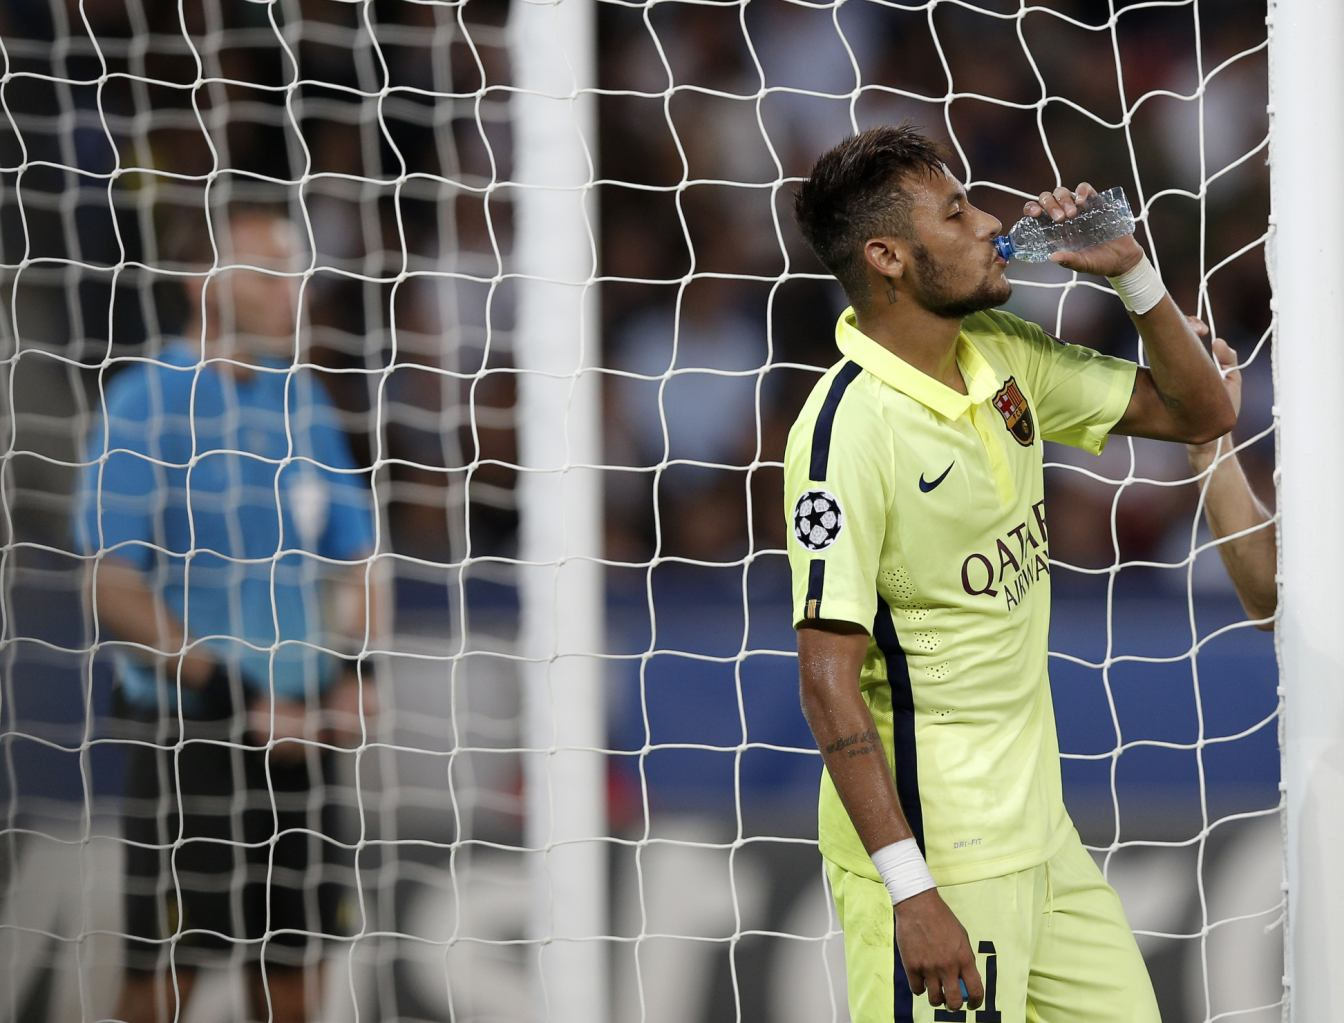 Neymar drinking from the bottle